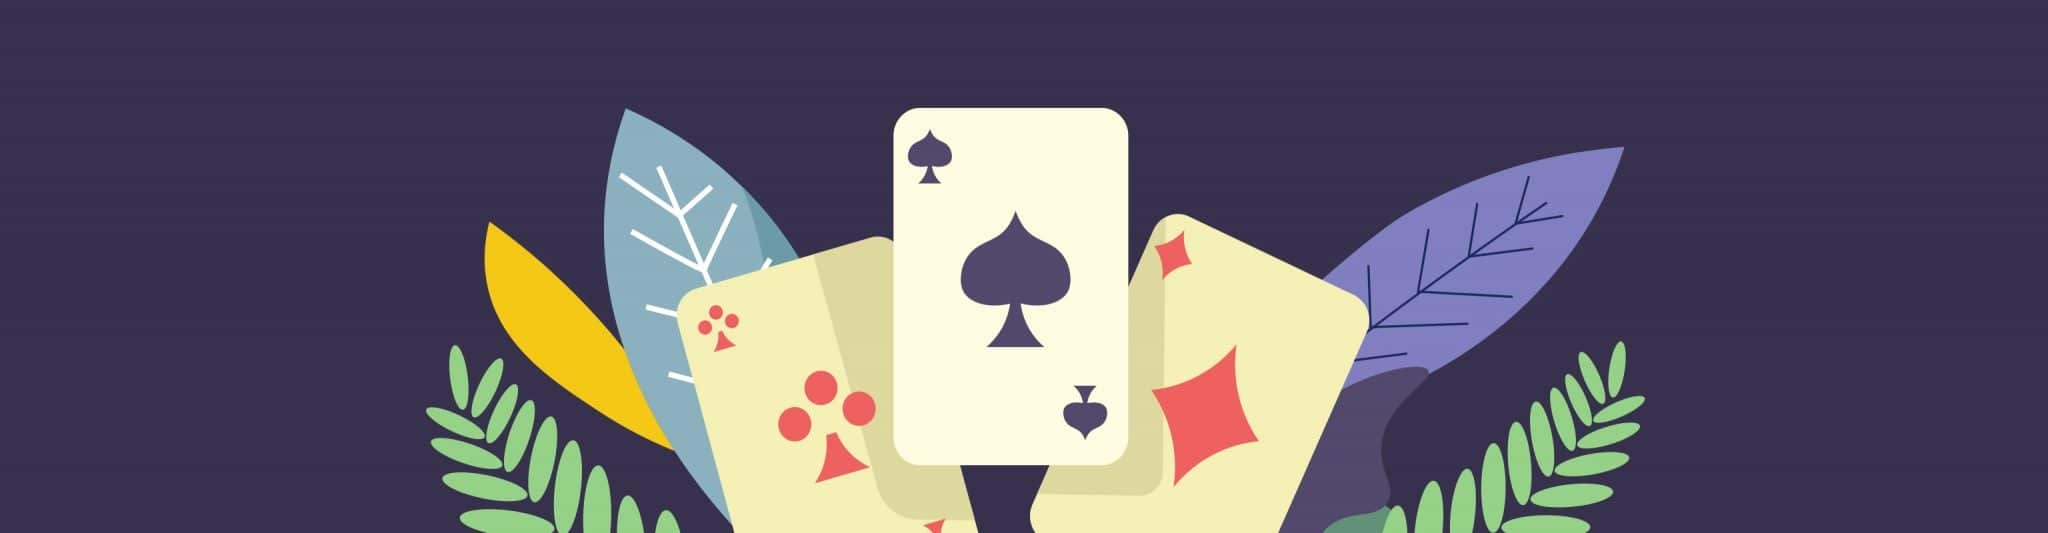 Leaders share 2020 Predictions for iGaming industry Banner 01 - CasinoTop